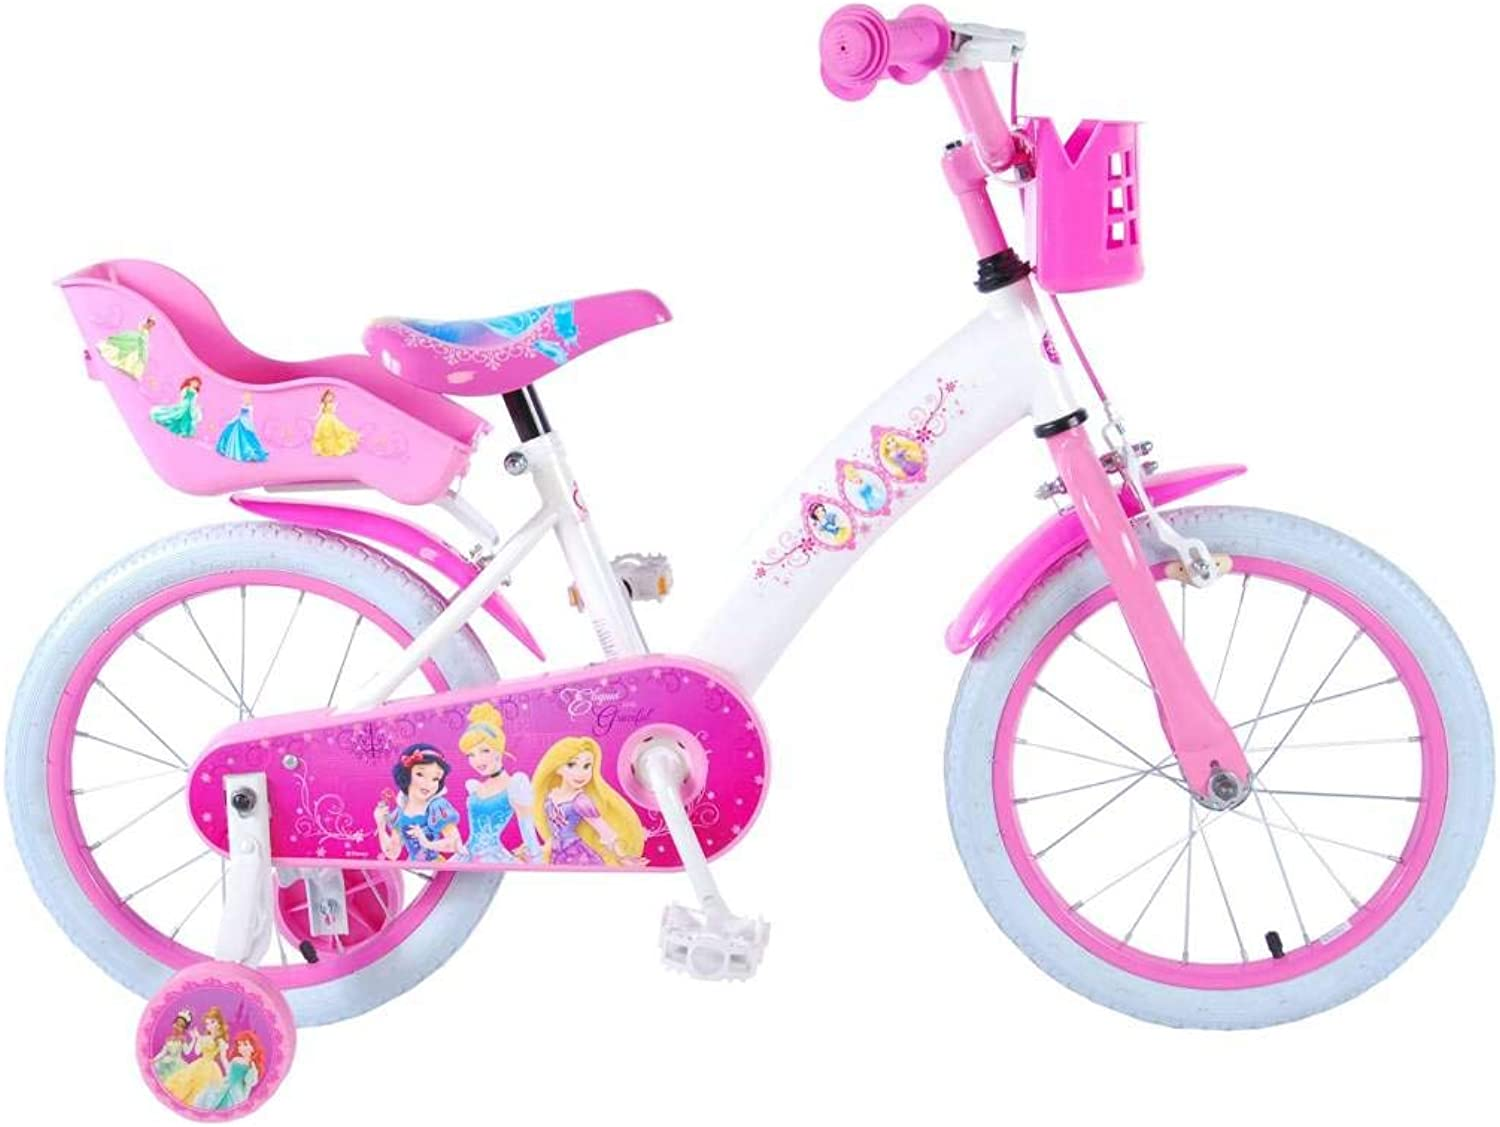 Disney Girl Bike Princess 16 Inch Front Brake and Rear Brake on Handlebar Basket and Doll Carrier White Pink 85% Assembled